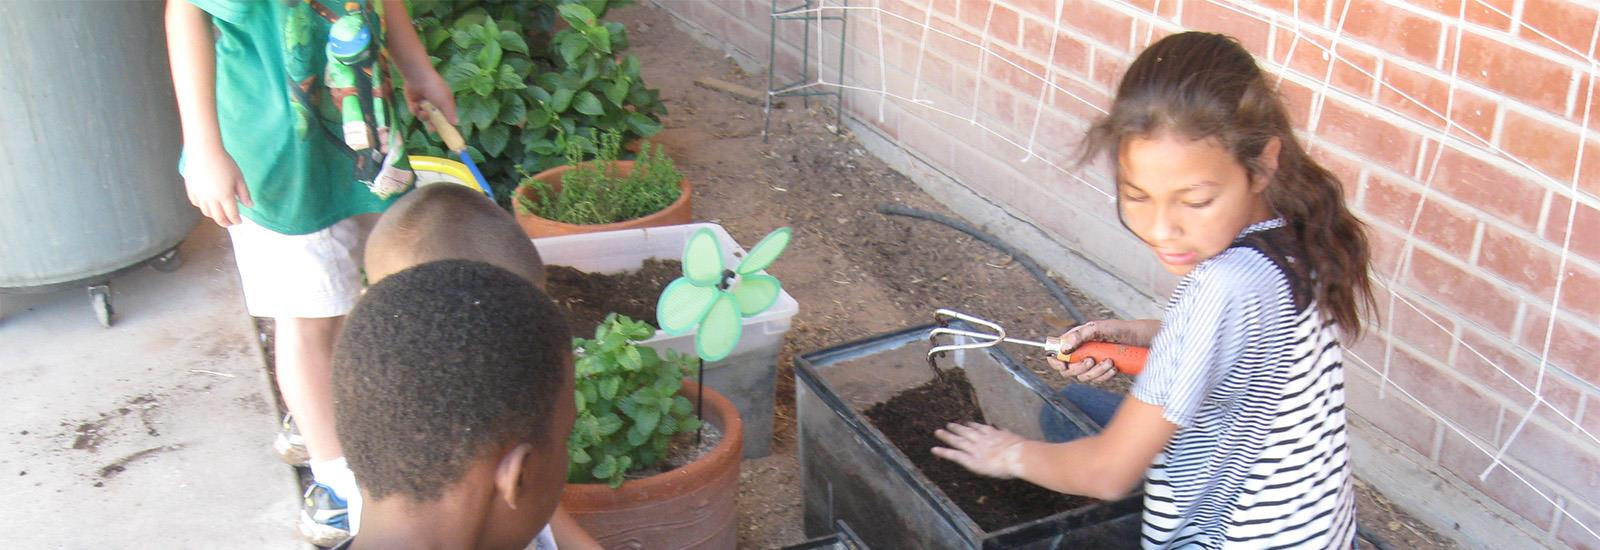 Active learning includes gardening.